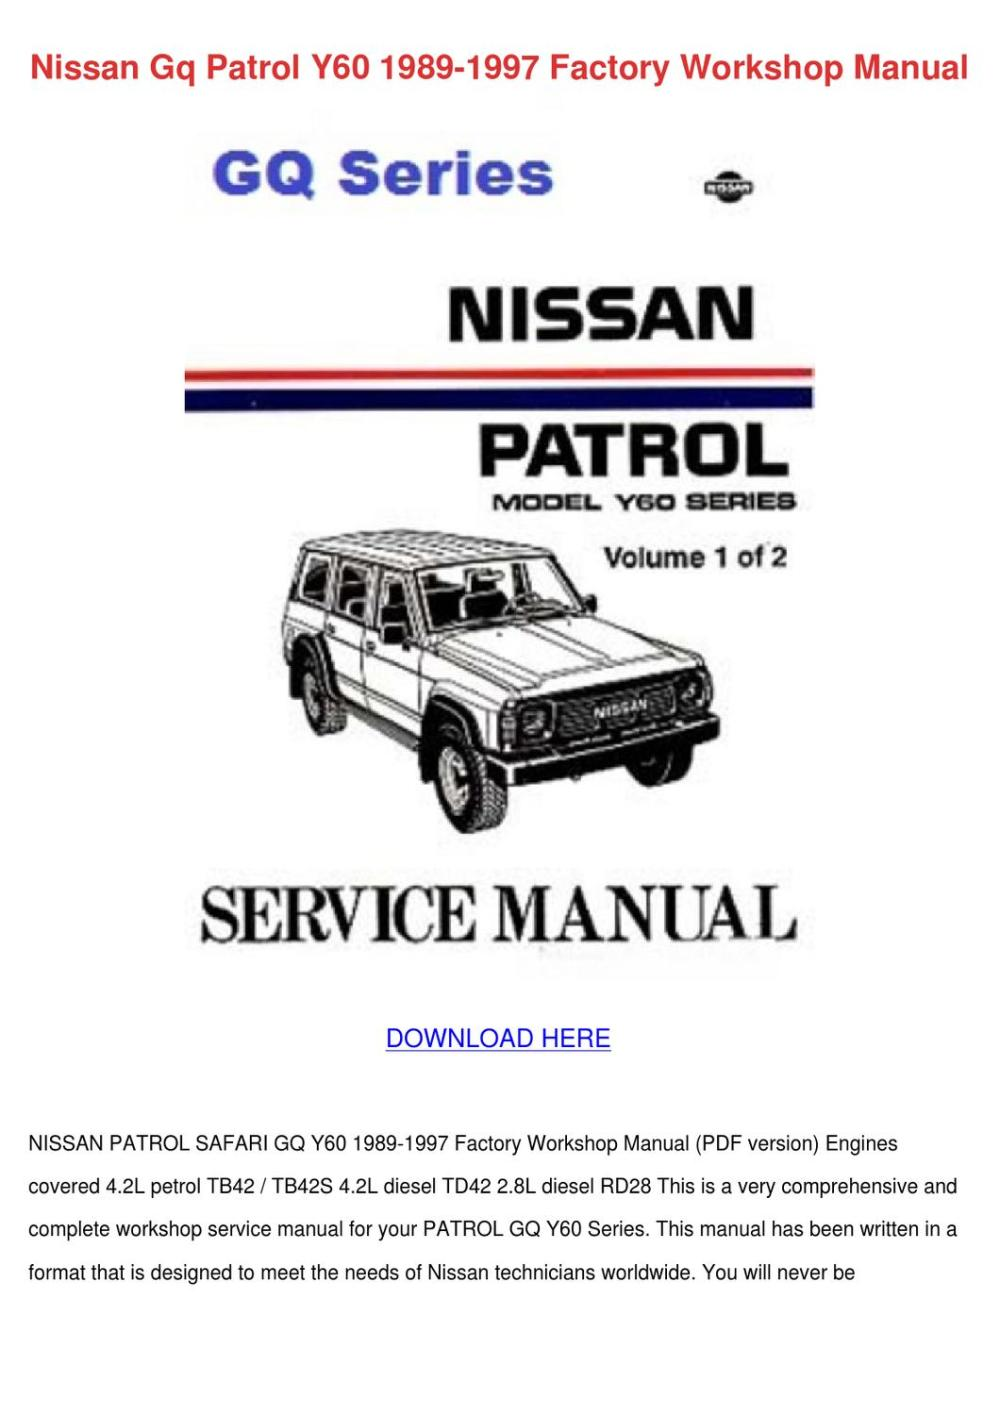 medium resolution of wiring diagrams at back are intact nissan patrol gu gr y61 workshop service repair flag forinappropriate content expect many ebooks that be accessed